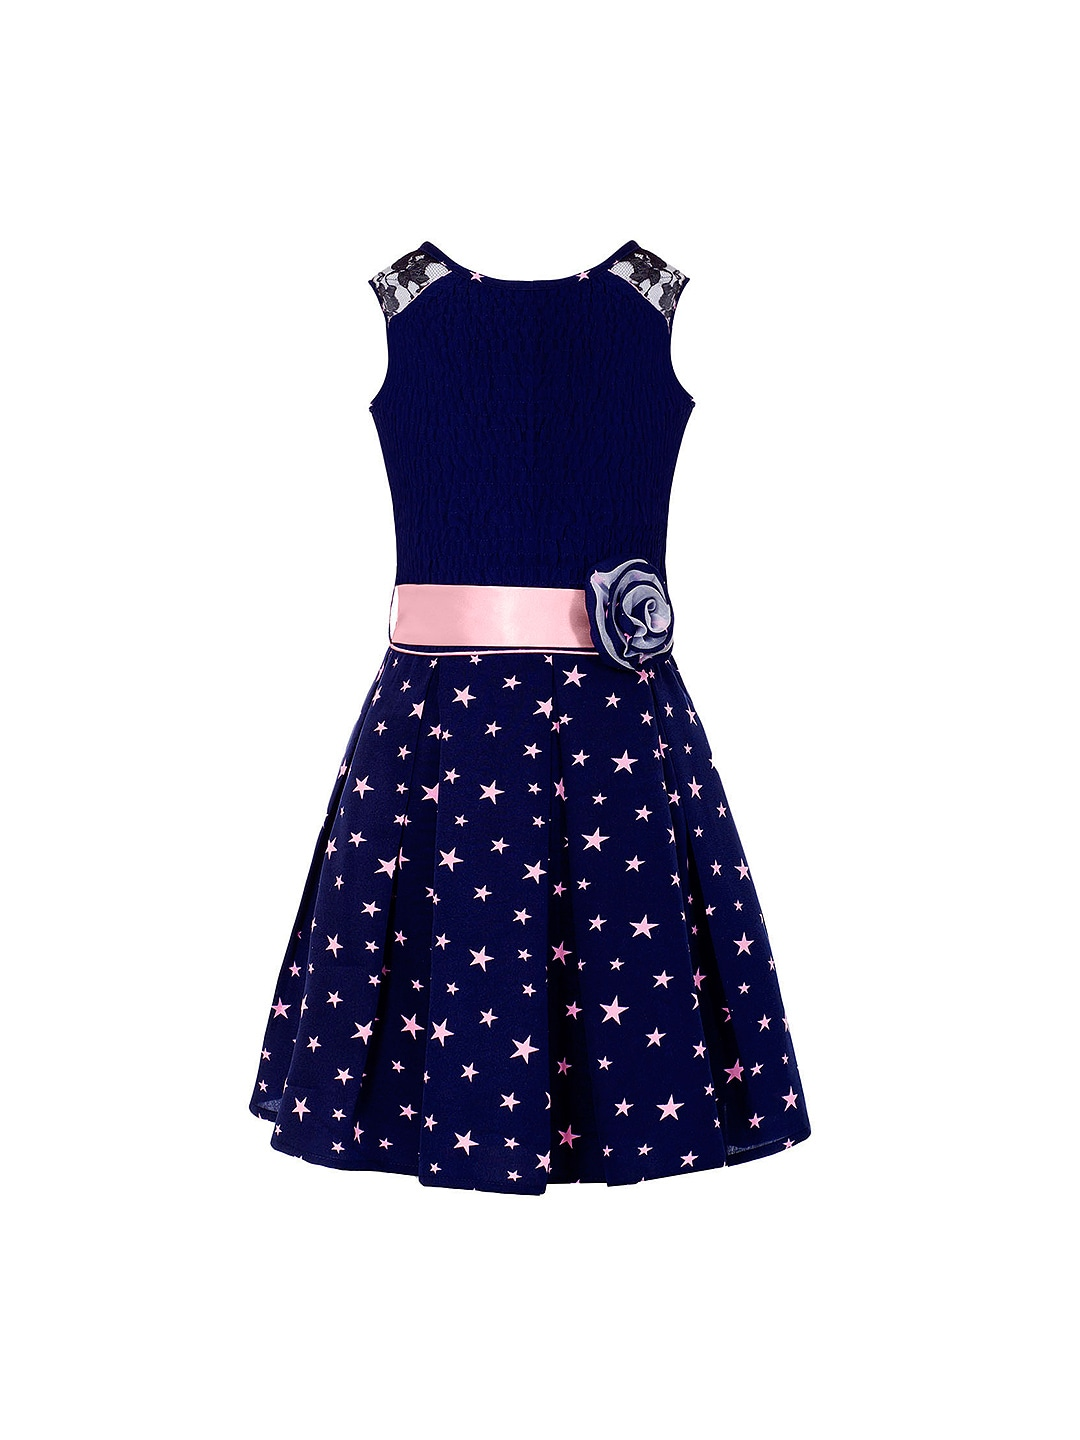 Dresses for Girls - Buy Frocks & Dresses for Children Online